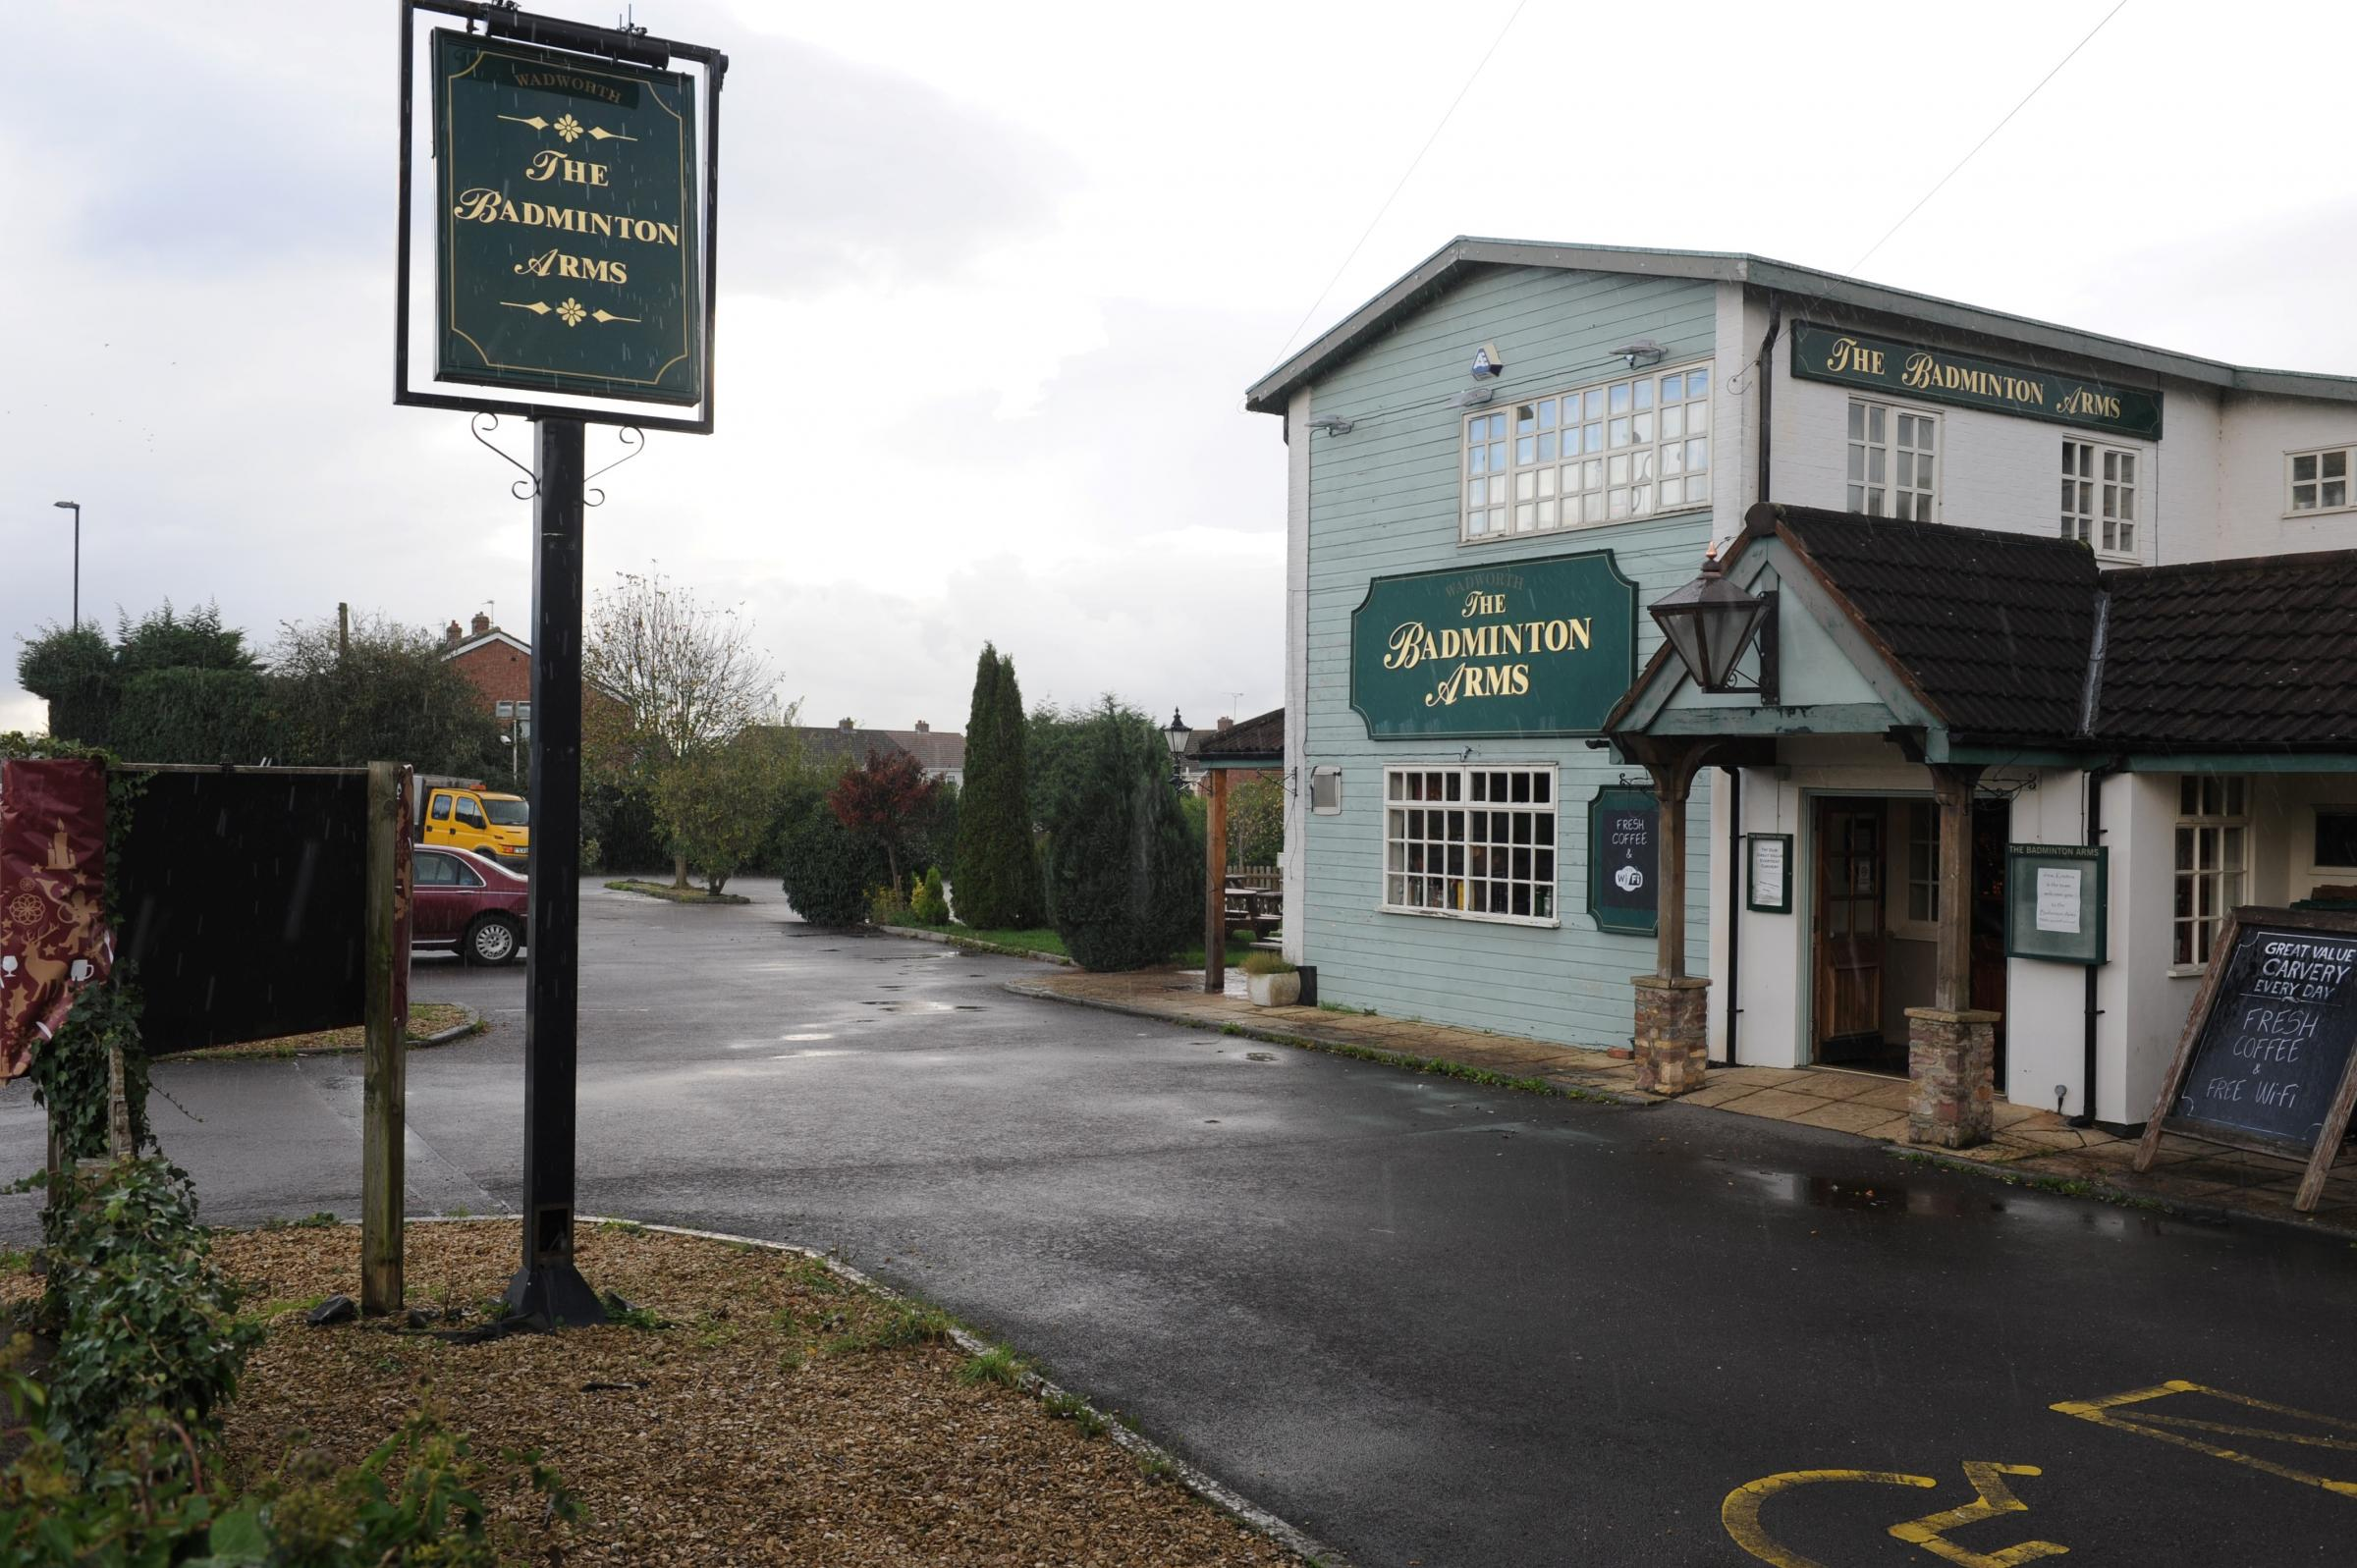 The Badminton Arms in Coalpit Heath